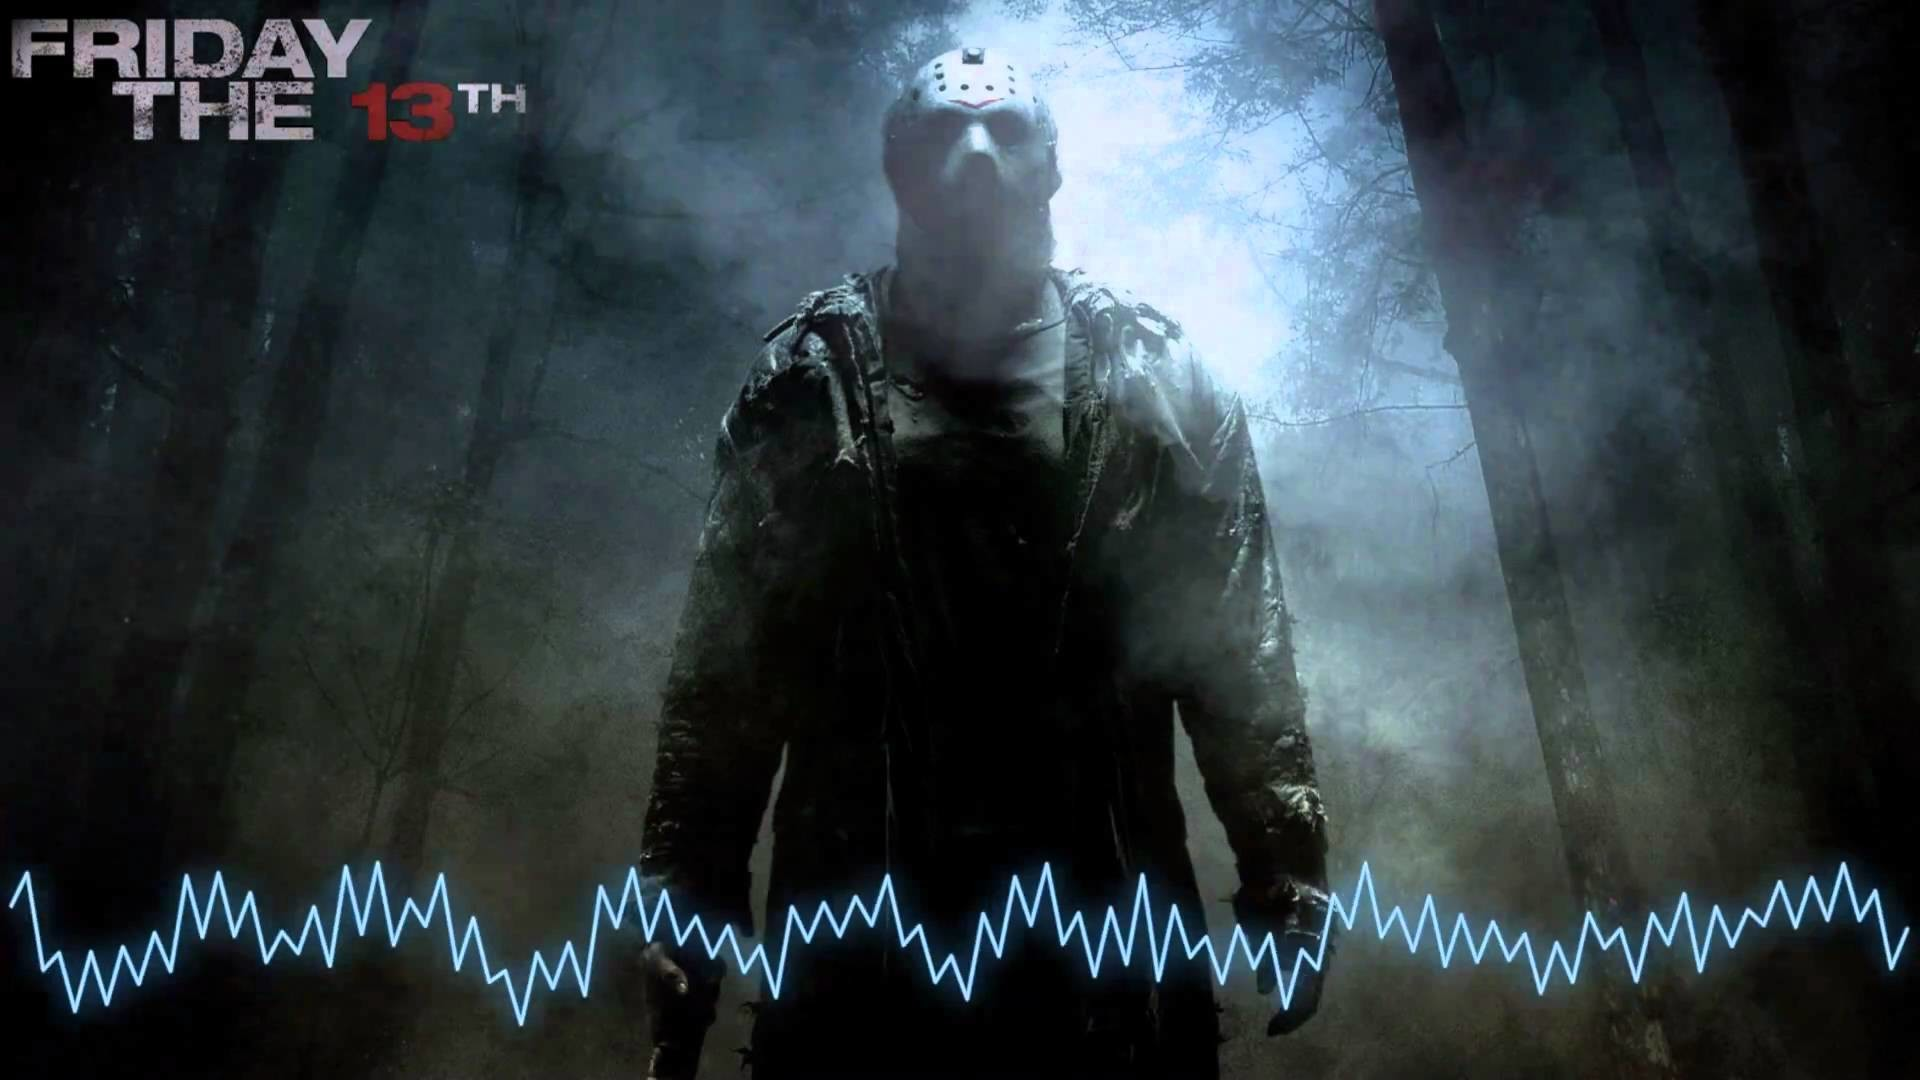 1920x1080 Friday The 13th 2009 Images